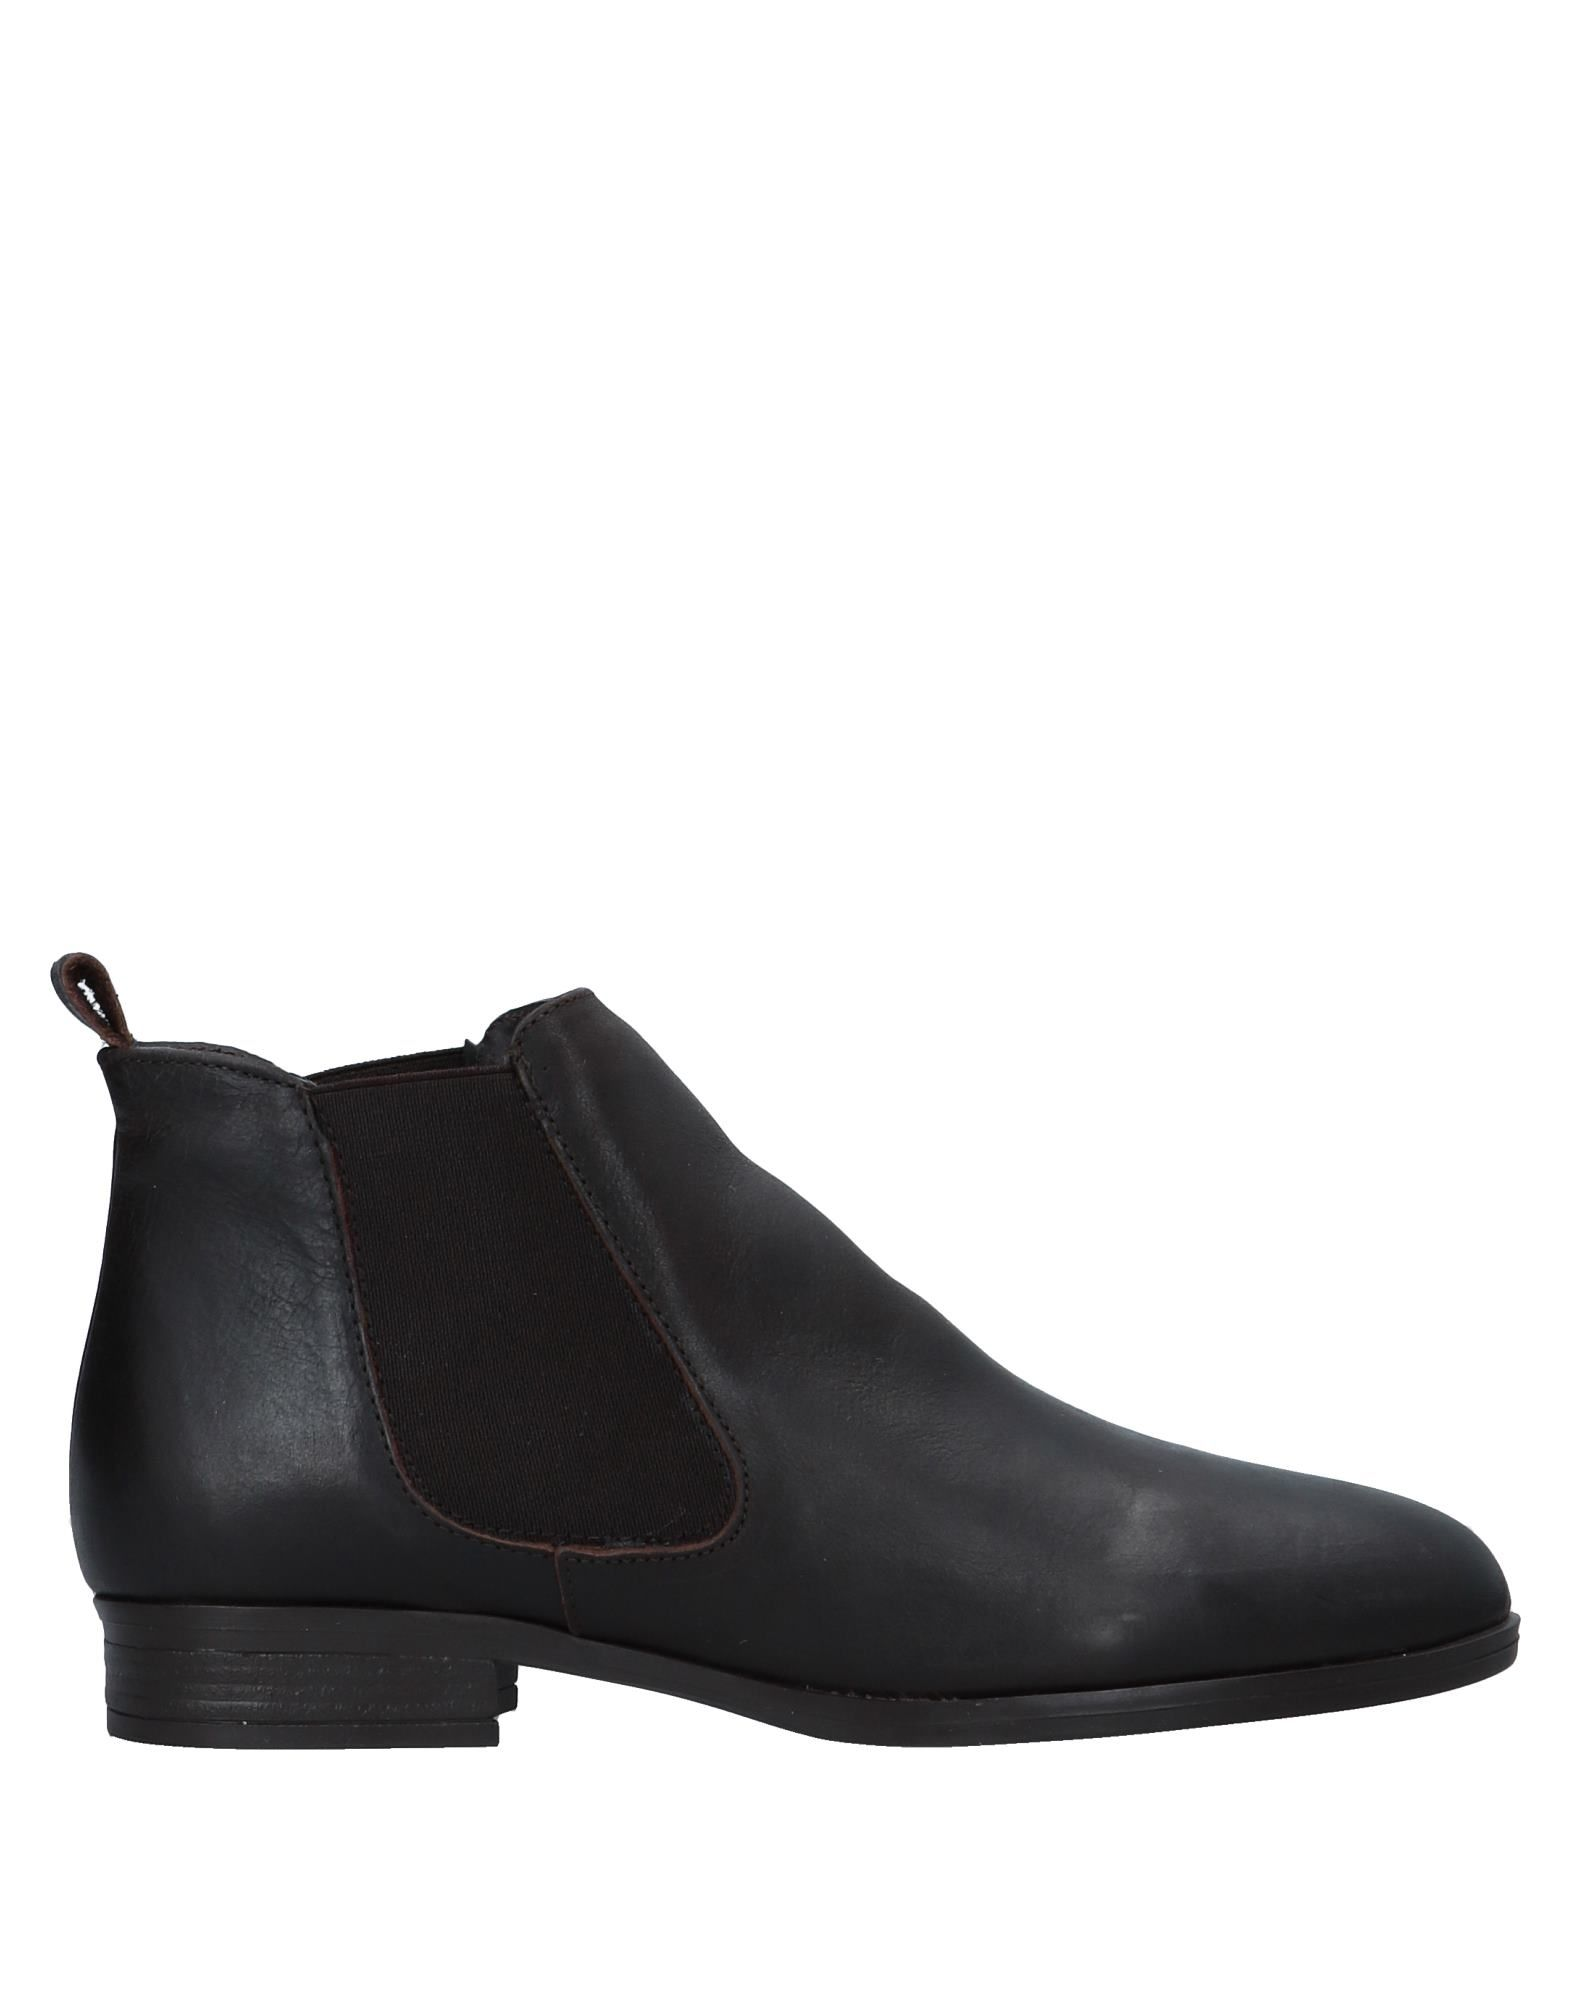 Cuplé Ankle - Boot - Ankle Women Cuplé Ankle Boots online on  Canada - 11542926FL 102995